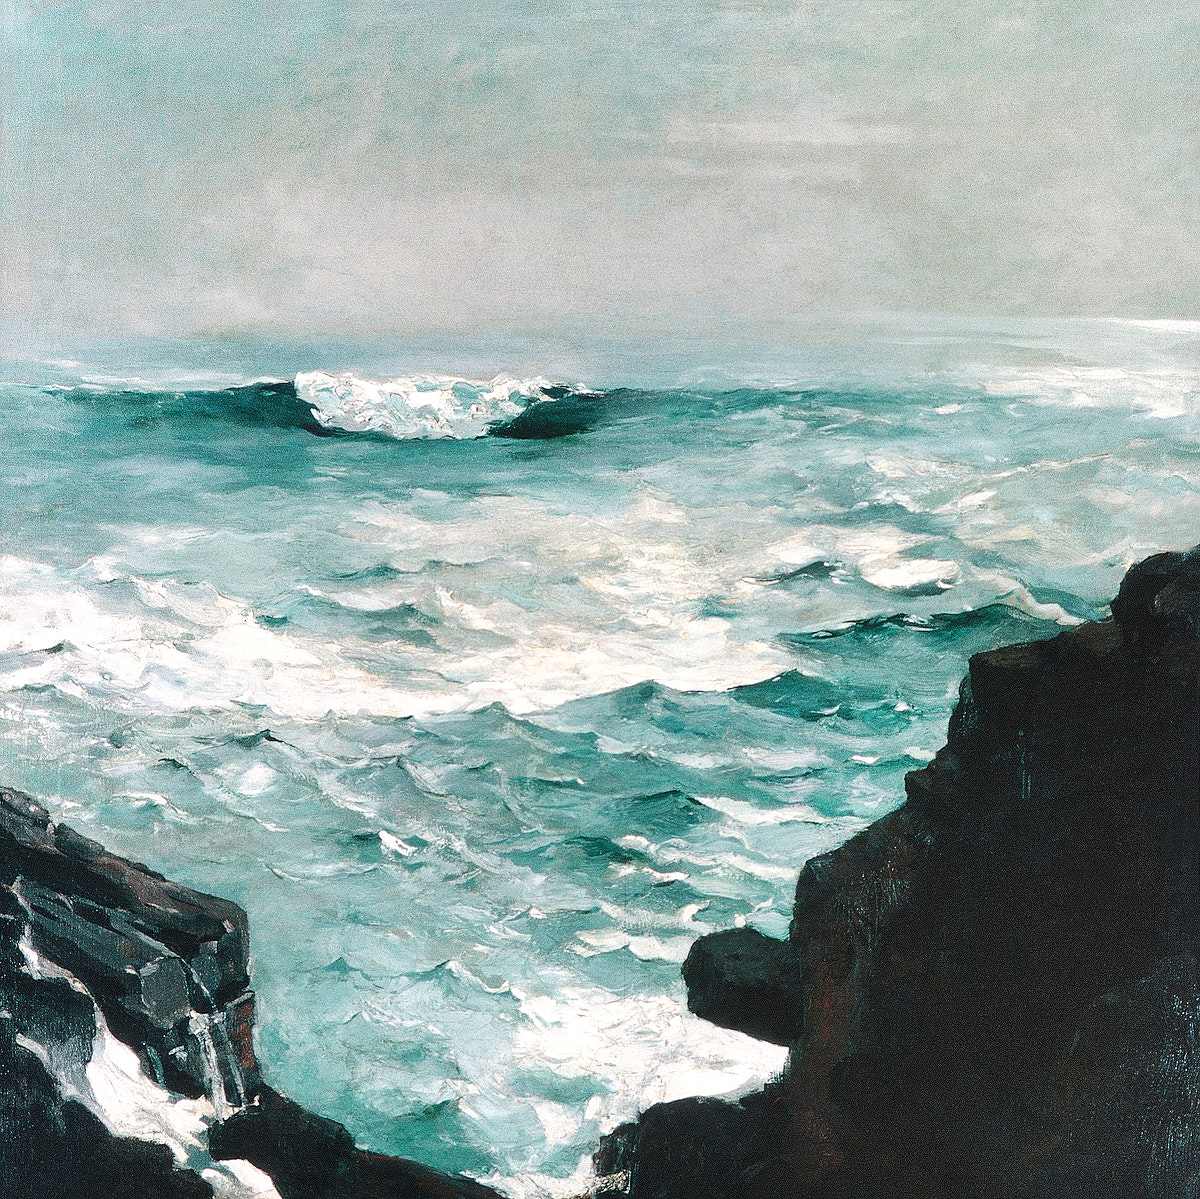 Cannon Rock (1895) by Winslow Homer. Original from The MET museum. Digitally enhanced by rawpixel.